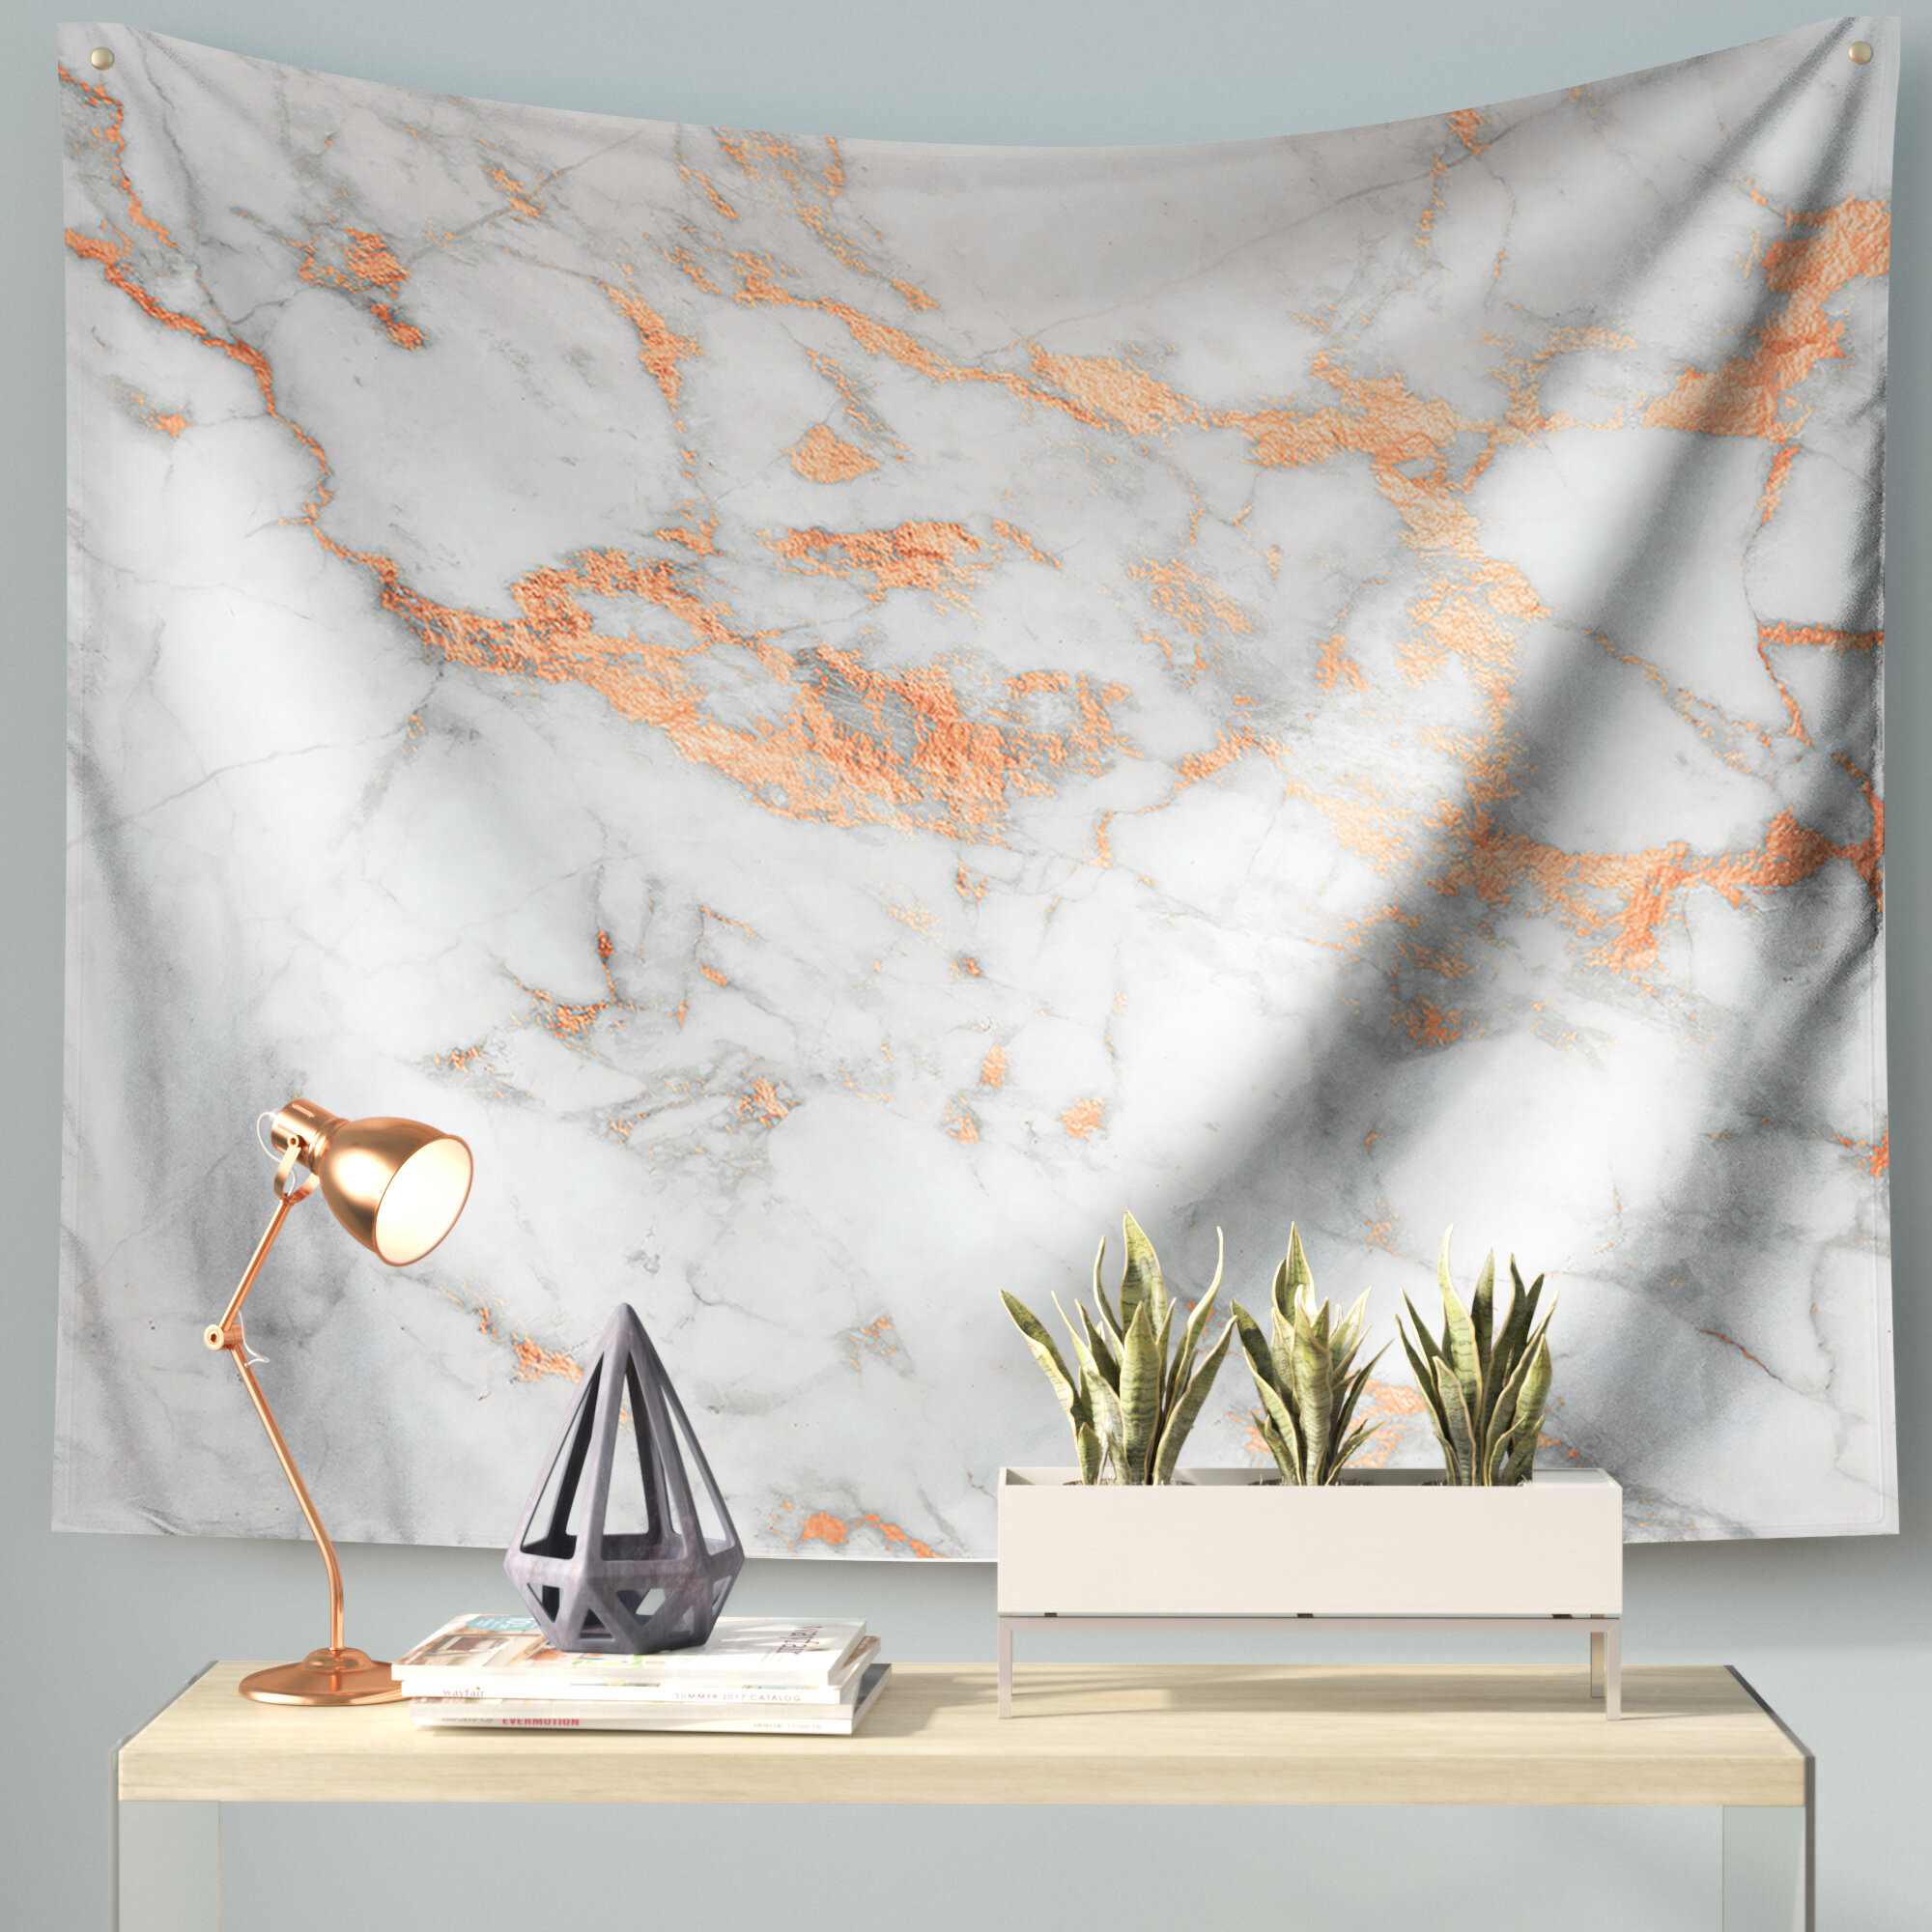 East Urban Home Rose Gold Flake Wall Tapestry Reviews Wayfair